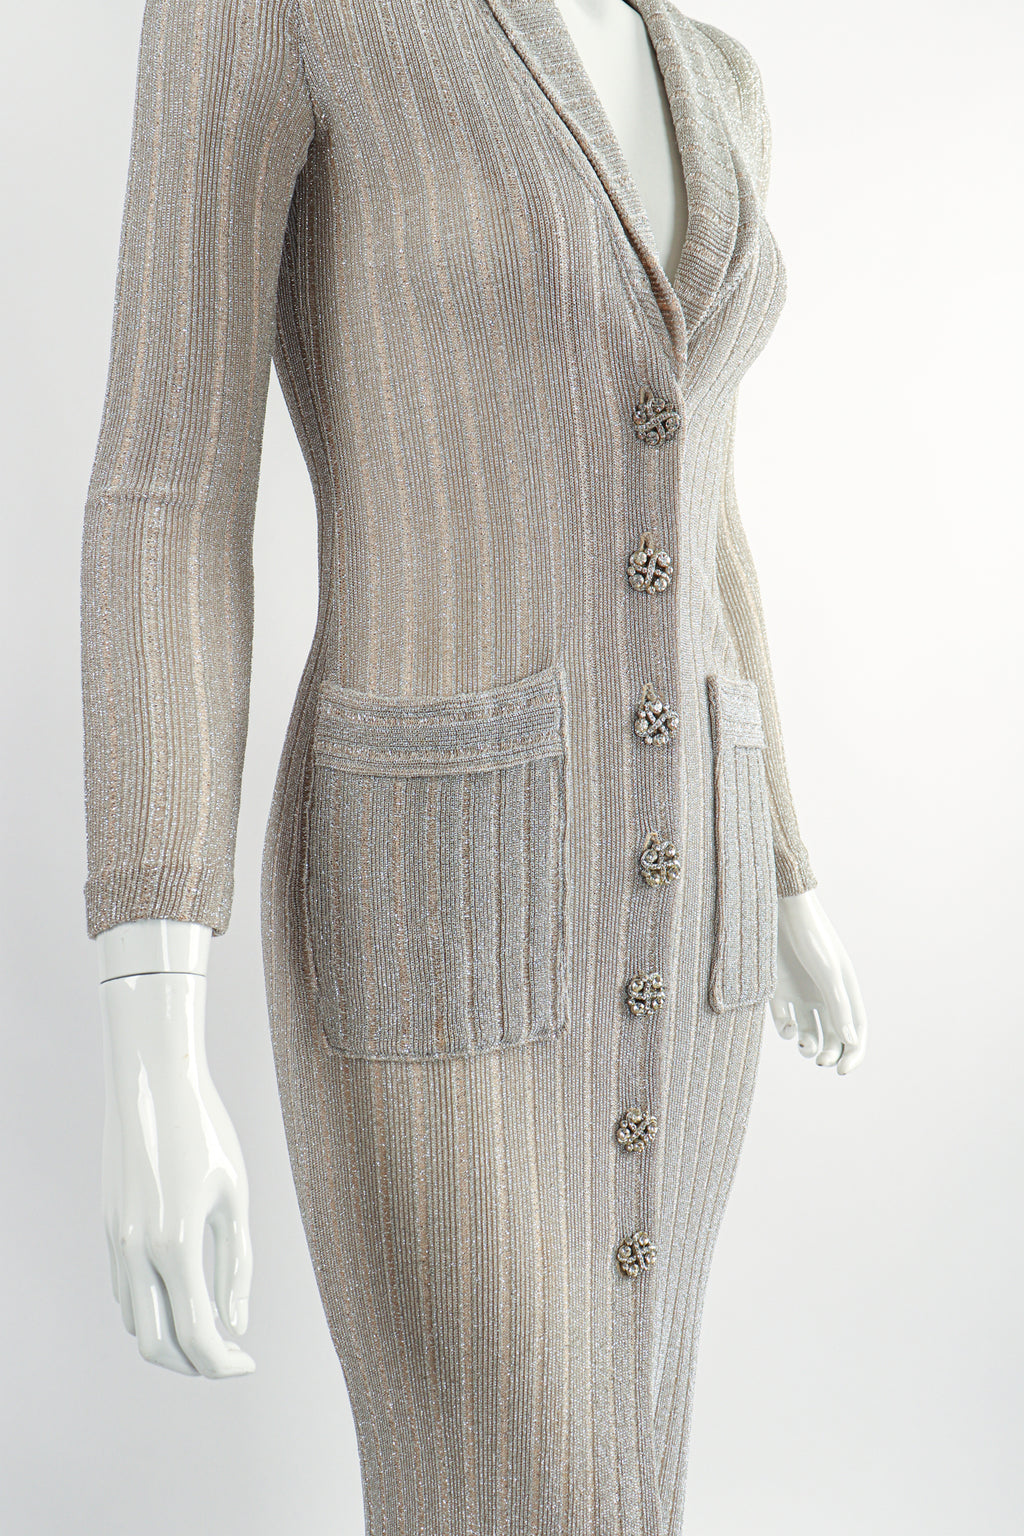 Vintage John Kloss for Cira Long Sheer Metallic Duster Sweater On Mannequin Crop at Recess LA